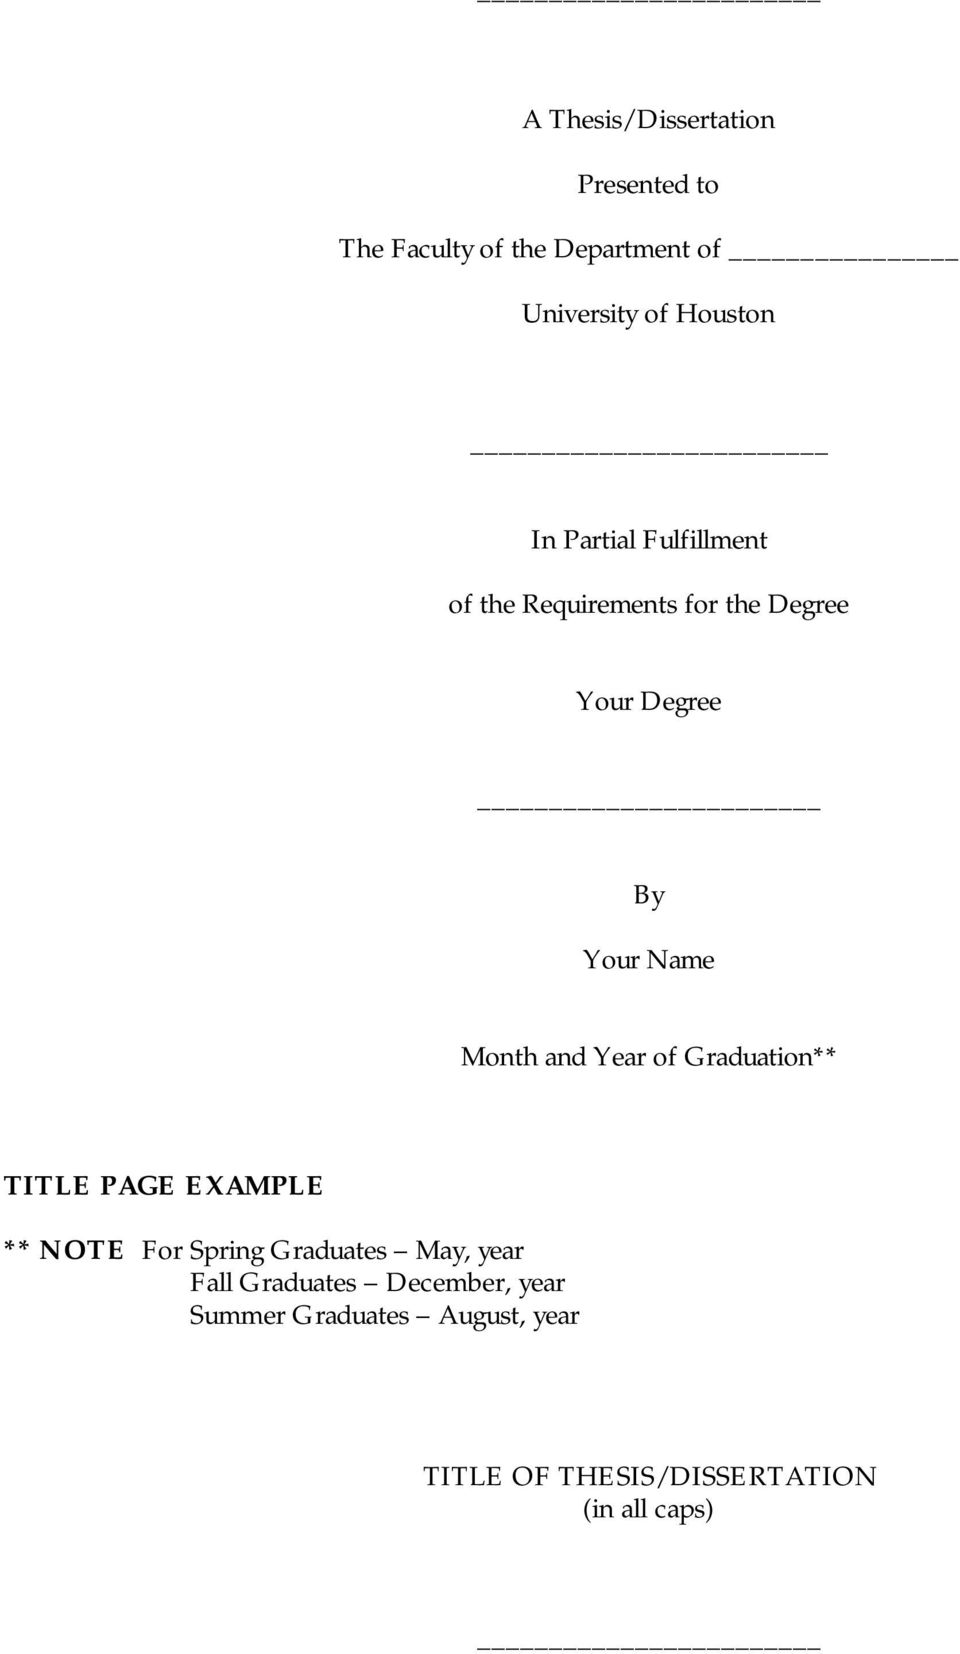 and Year of Graduation** TITLE PAGE EXAMPLE ** NOTE For Spring Graduates May, year Fall